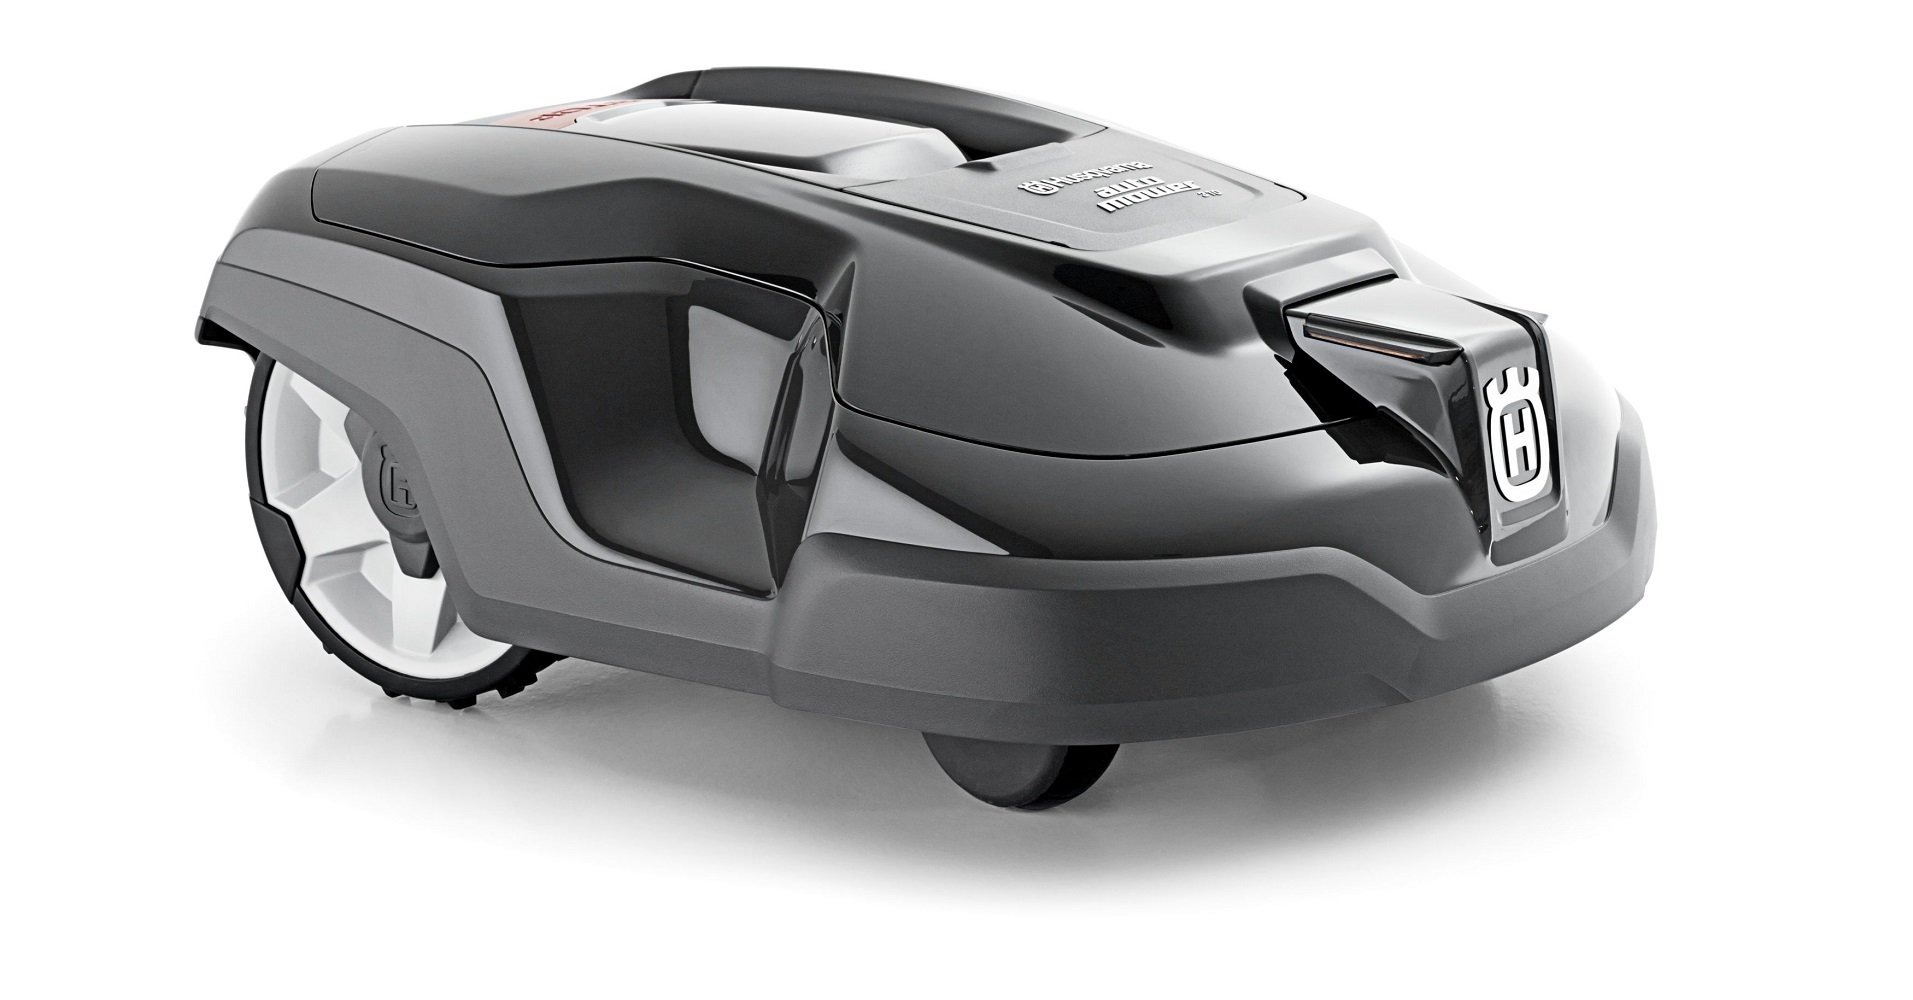 Husqvarna automower 310, robotic lawn mower 1 smart home meets smart lawn - manage your lawn with the touch of a button and maintain a yard your neighbor's will envy; the connect@home app allows you to set and adjust your automower's cutting schedule with ease (bluetooth connectivity works up to 100 ft) guided by hidden boundary wires, automower knows how to smartly maneuver around your yard and when to return to the charging station for a battery recharge quiet enough to run at night, you'll never have to worry about disturbing your neighbors again with noise or fumes